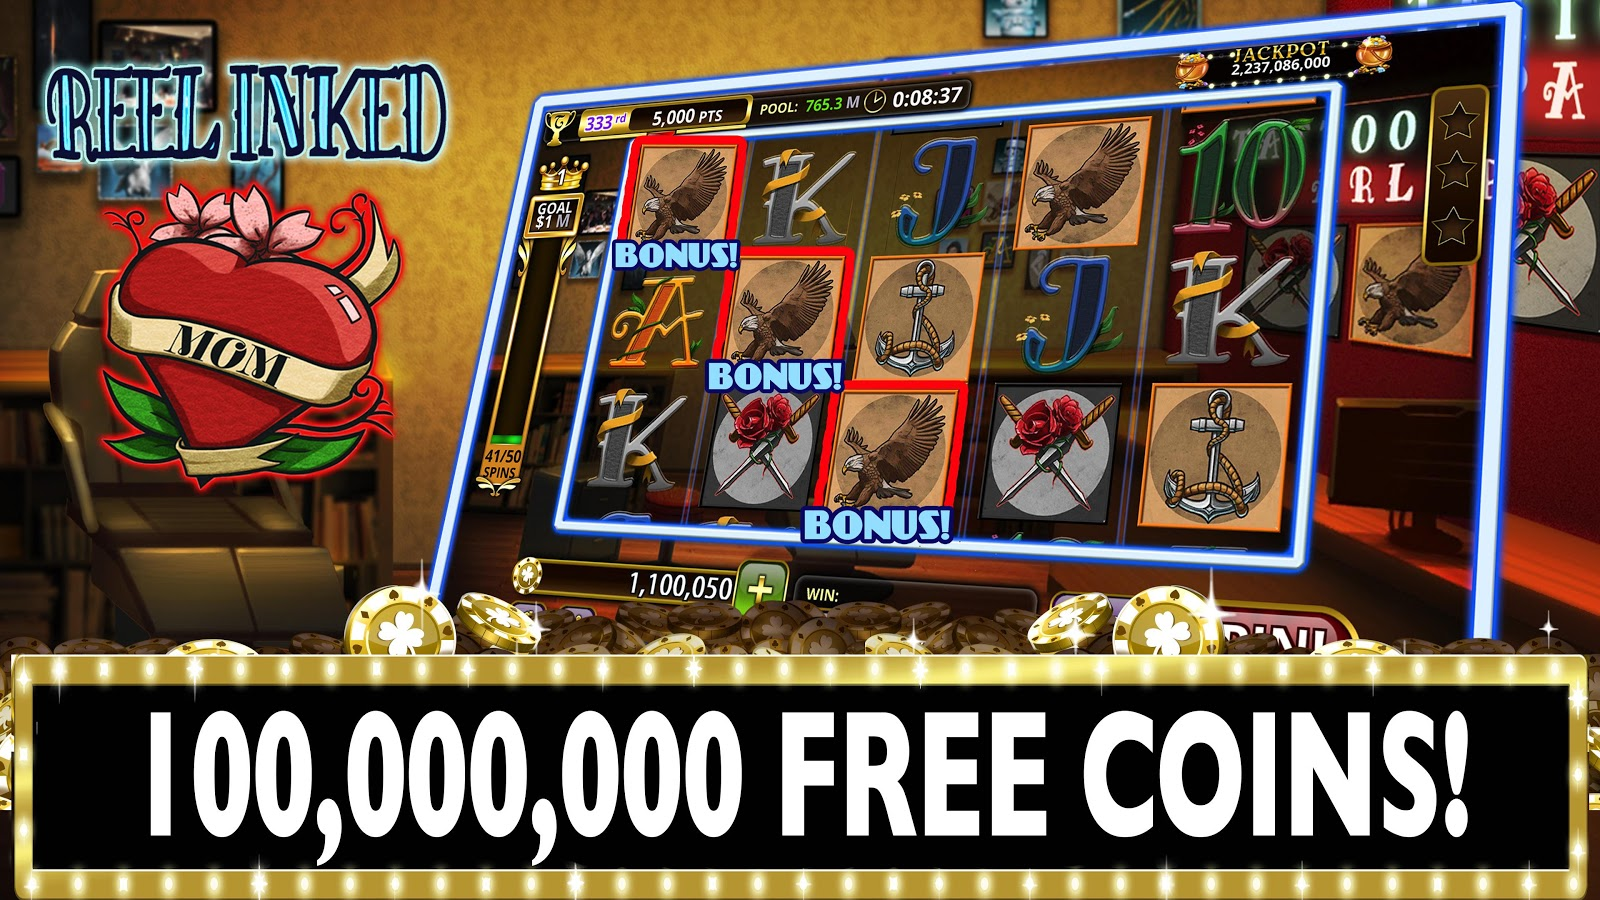 Wu Xing Slot Machine - Try this Online Game for Free Now